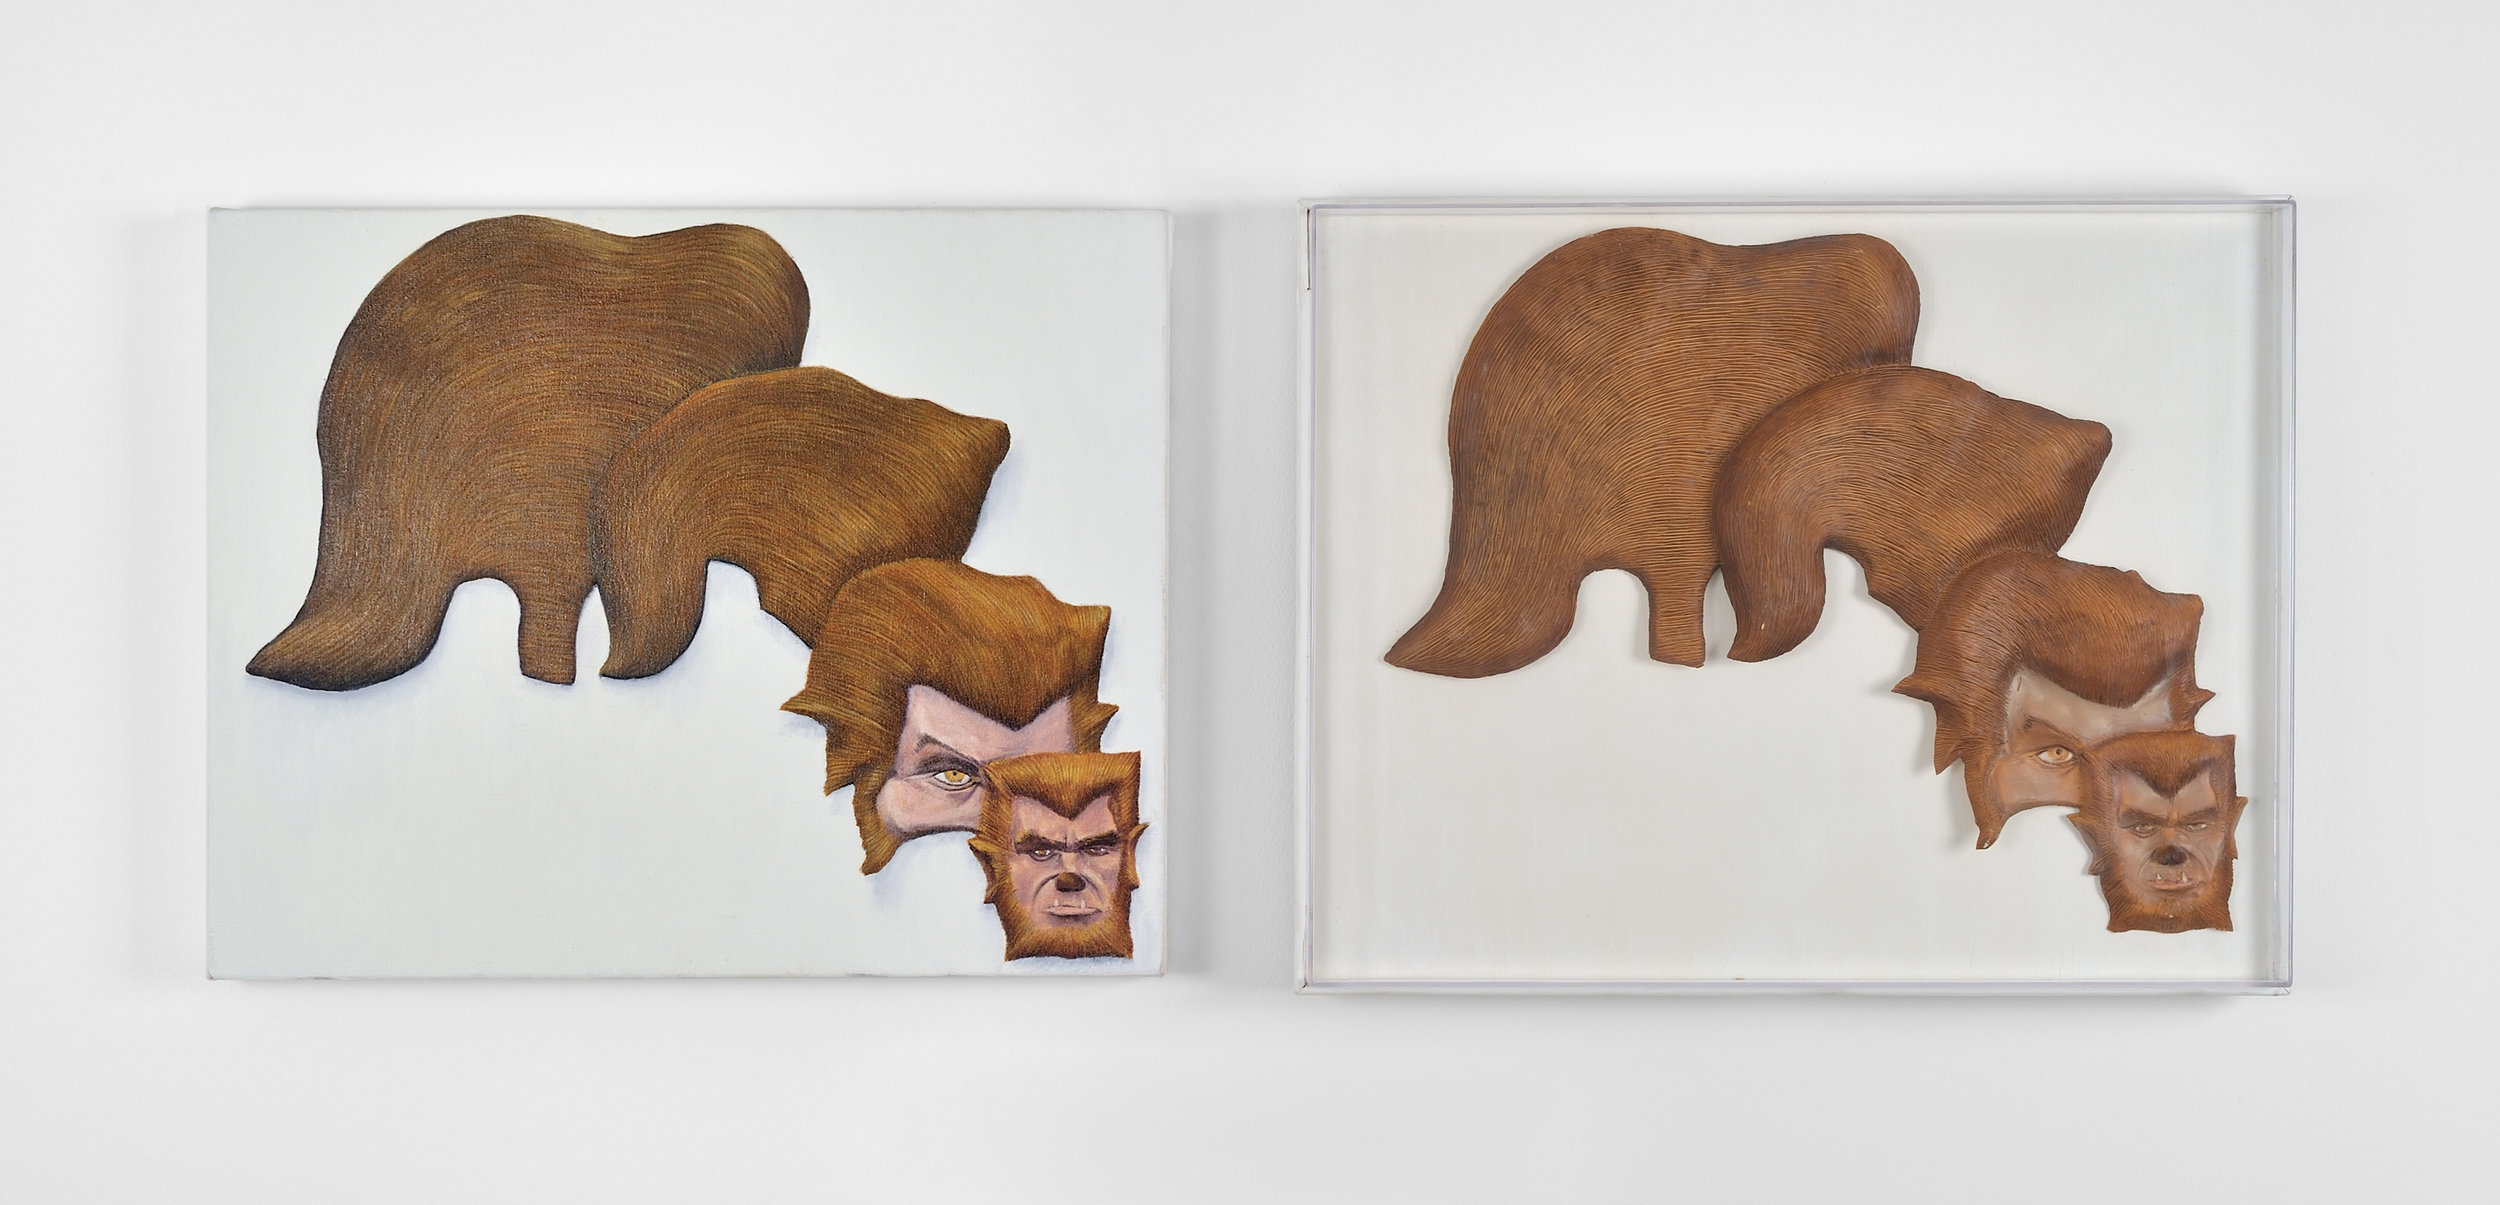 "Dream Object (""I had to get off the hiway in Texas... Inside a thrift store were a succession of partial heads vac u formed that grew from a juvenile delinquent to a vampire & a J.D. Duck tail hairdo shrunk into a werewolf...""), 1998 oil on canvas, wood, plexiglas, latex, lacquer 42 x 53 x 6 cm - 16 1/2 x 20 7/8 x 2 3/8 inches (framed) (each panel)"